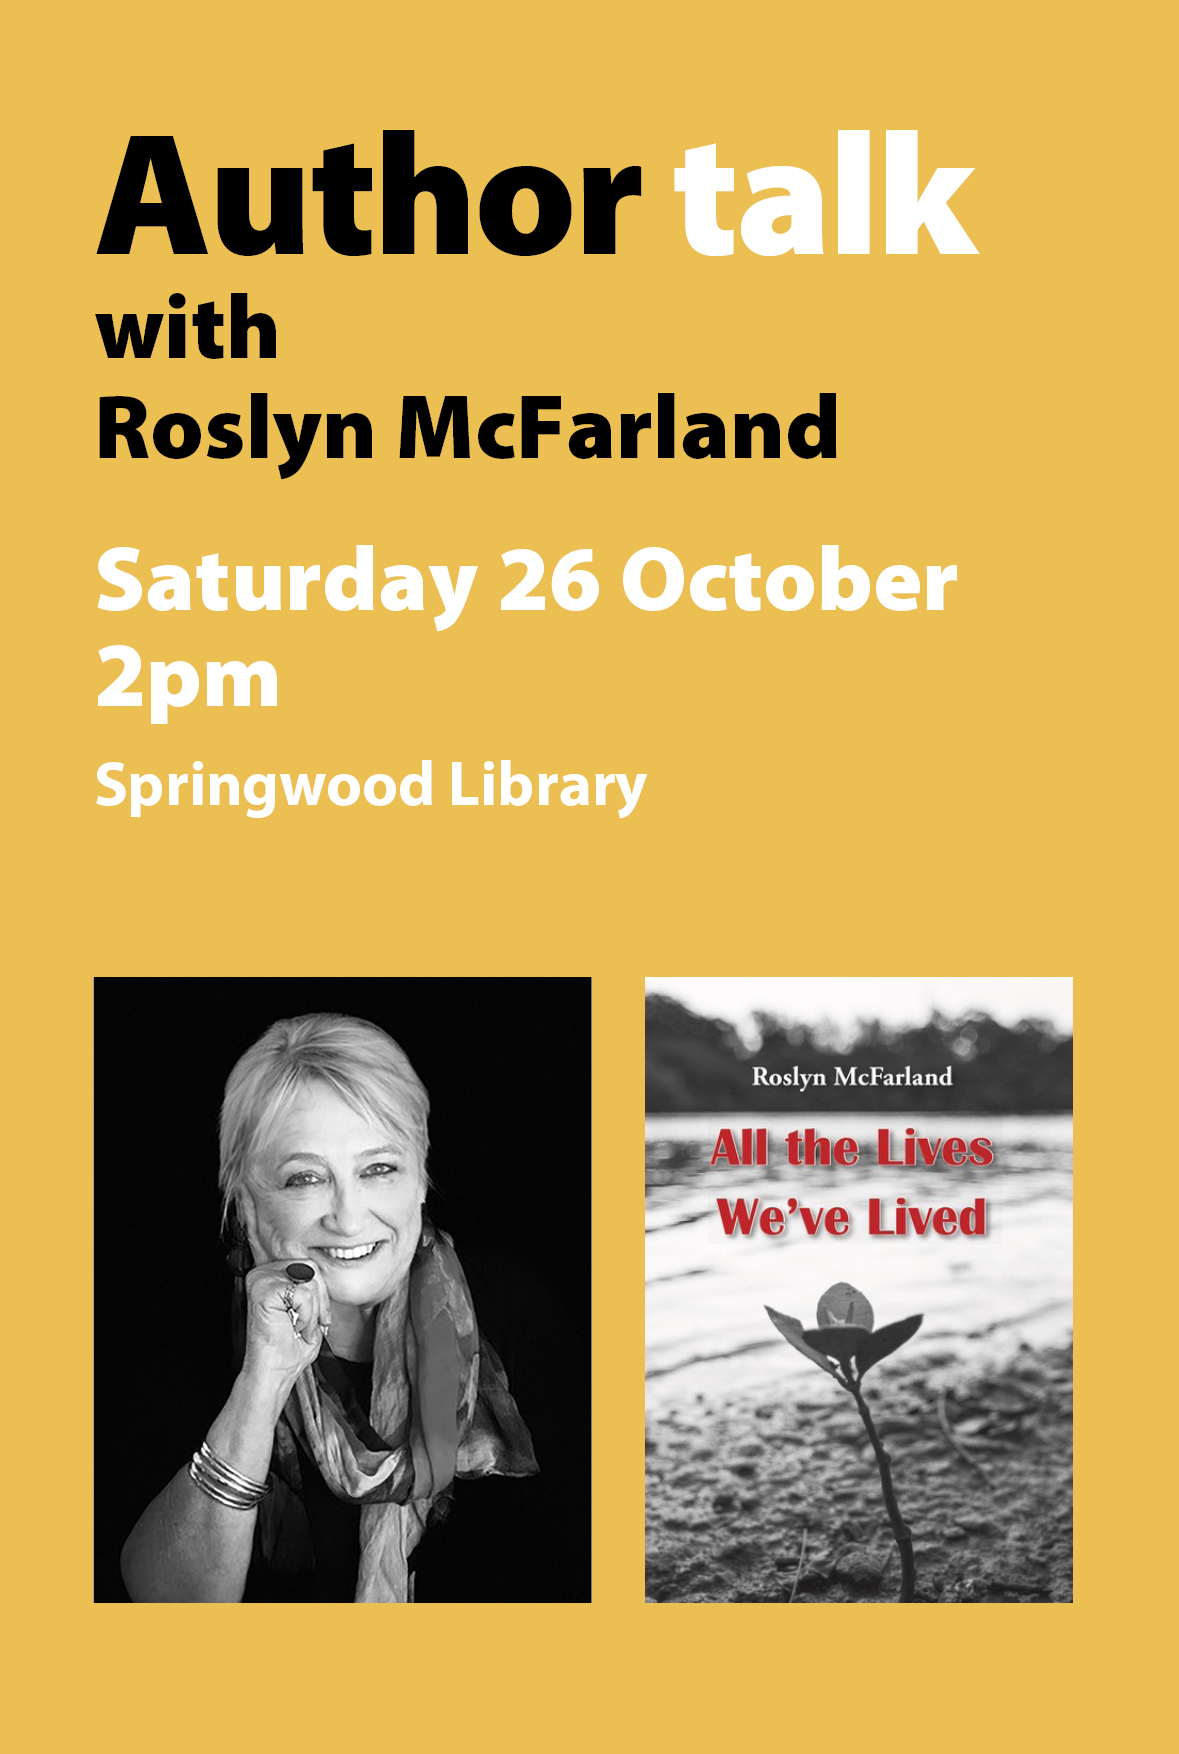 An author talk with Roslyn McFarland. Saturday 26 October, 2pm at Springwood Library.Bookings essential.